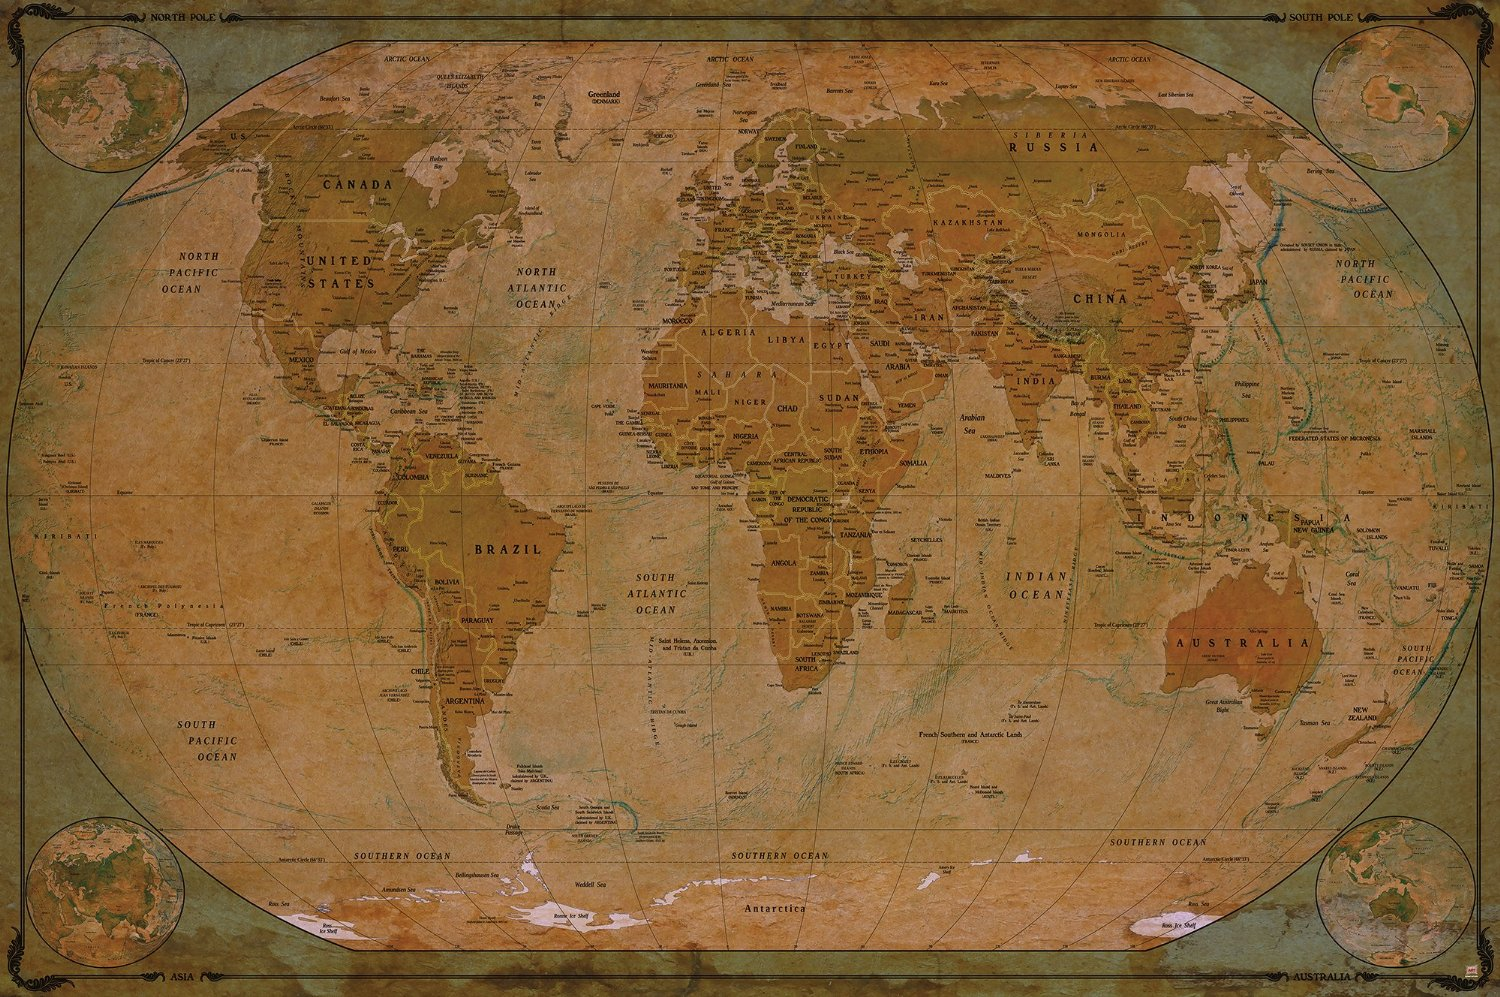 Cheap 7 inch wallpaper borders find 7 inch wallpaper borders deals get quotations world map atlas globus historic world map photo wallpaper vintage retro motif xxl gumiabroncs Image collections